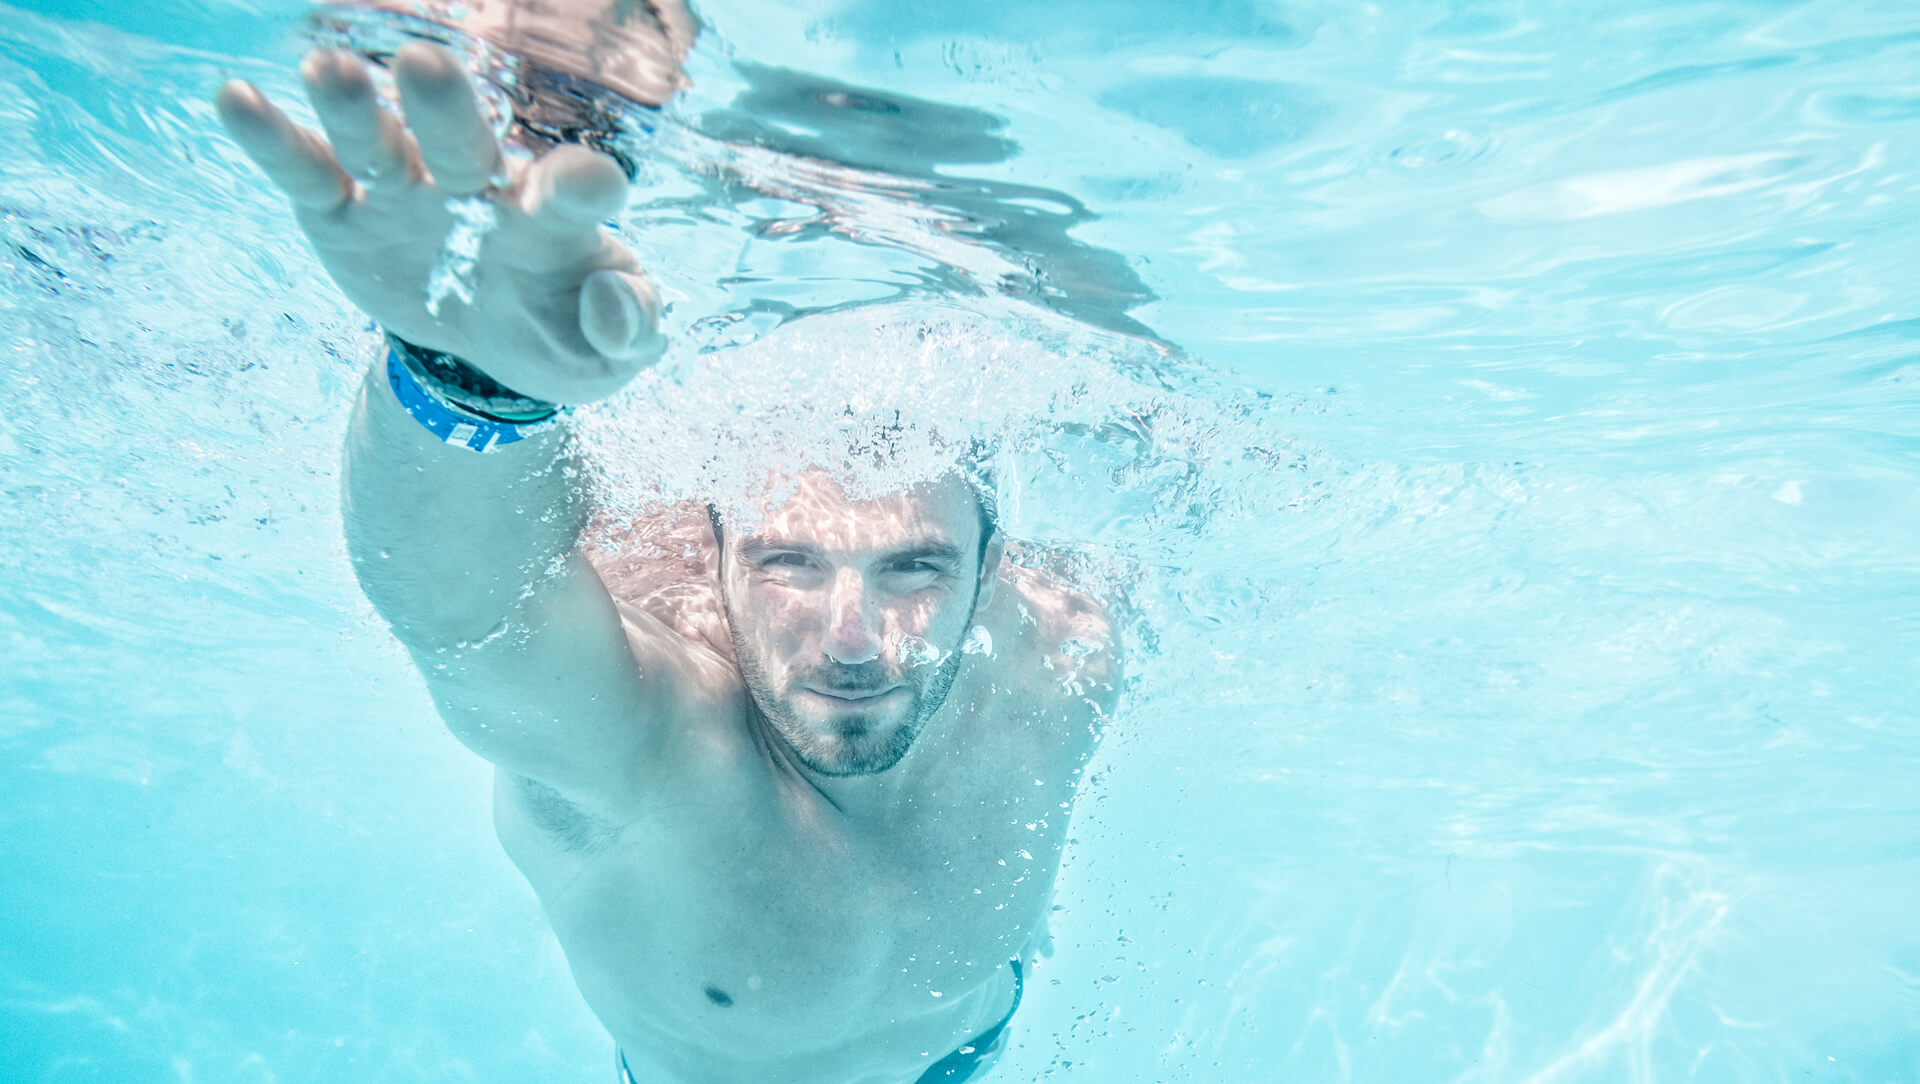 Man swimming in pool viewed from beneath